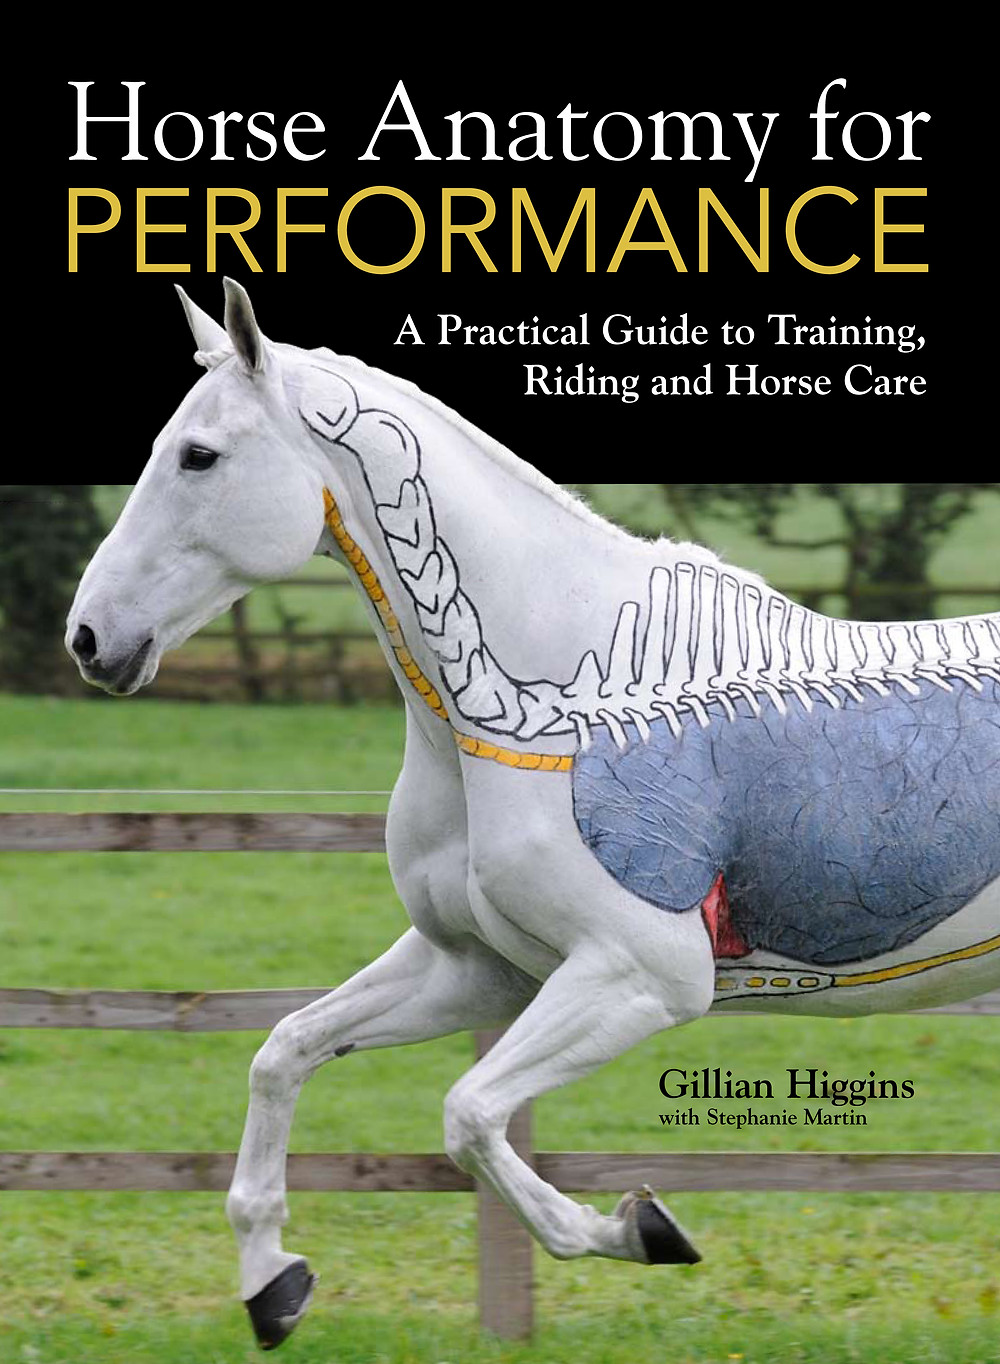 Horse Anatomy for Performance, The integumentary, skeletal , muscular,  digestive, cardiovascular, respiratory, nervous, lymphatic, reproductive, endocrine, urinary systems and connective tissues, tendons, ligaments, fascia. A practical guide to training, riding and horse care